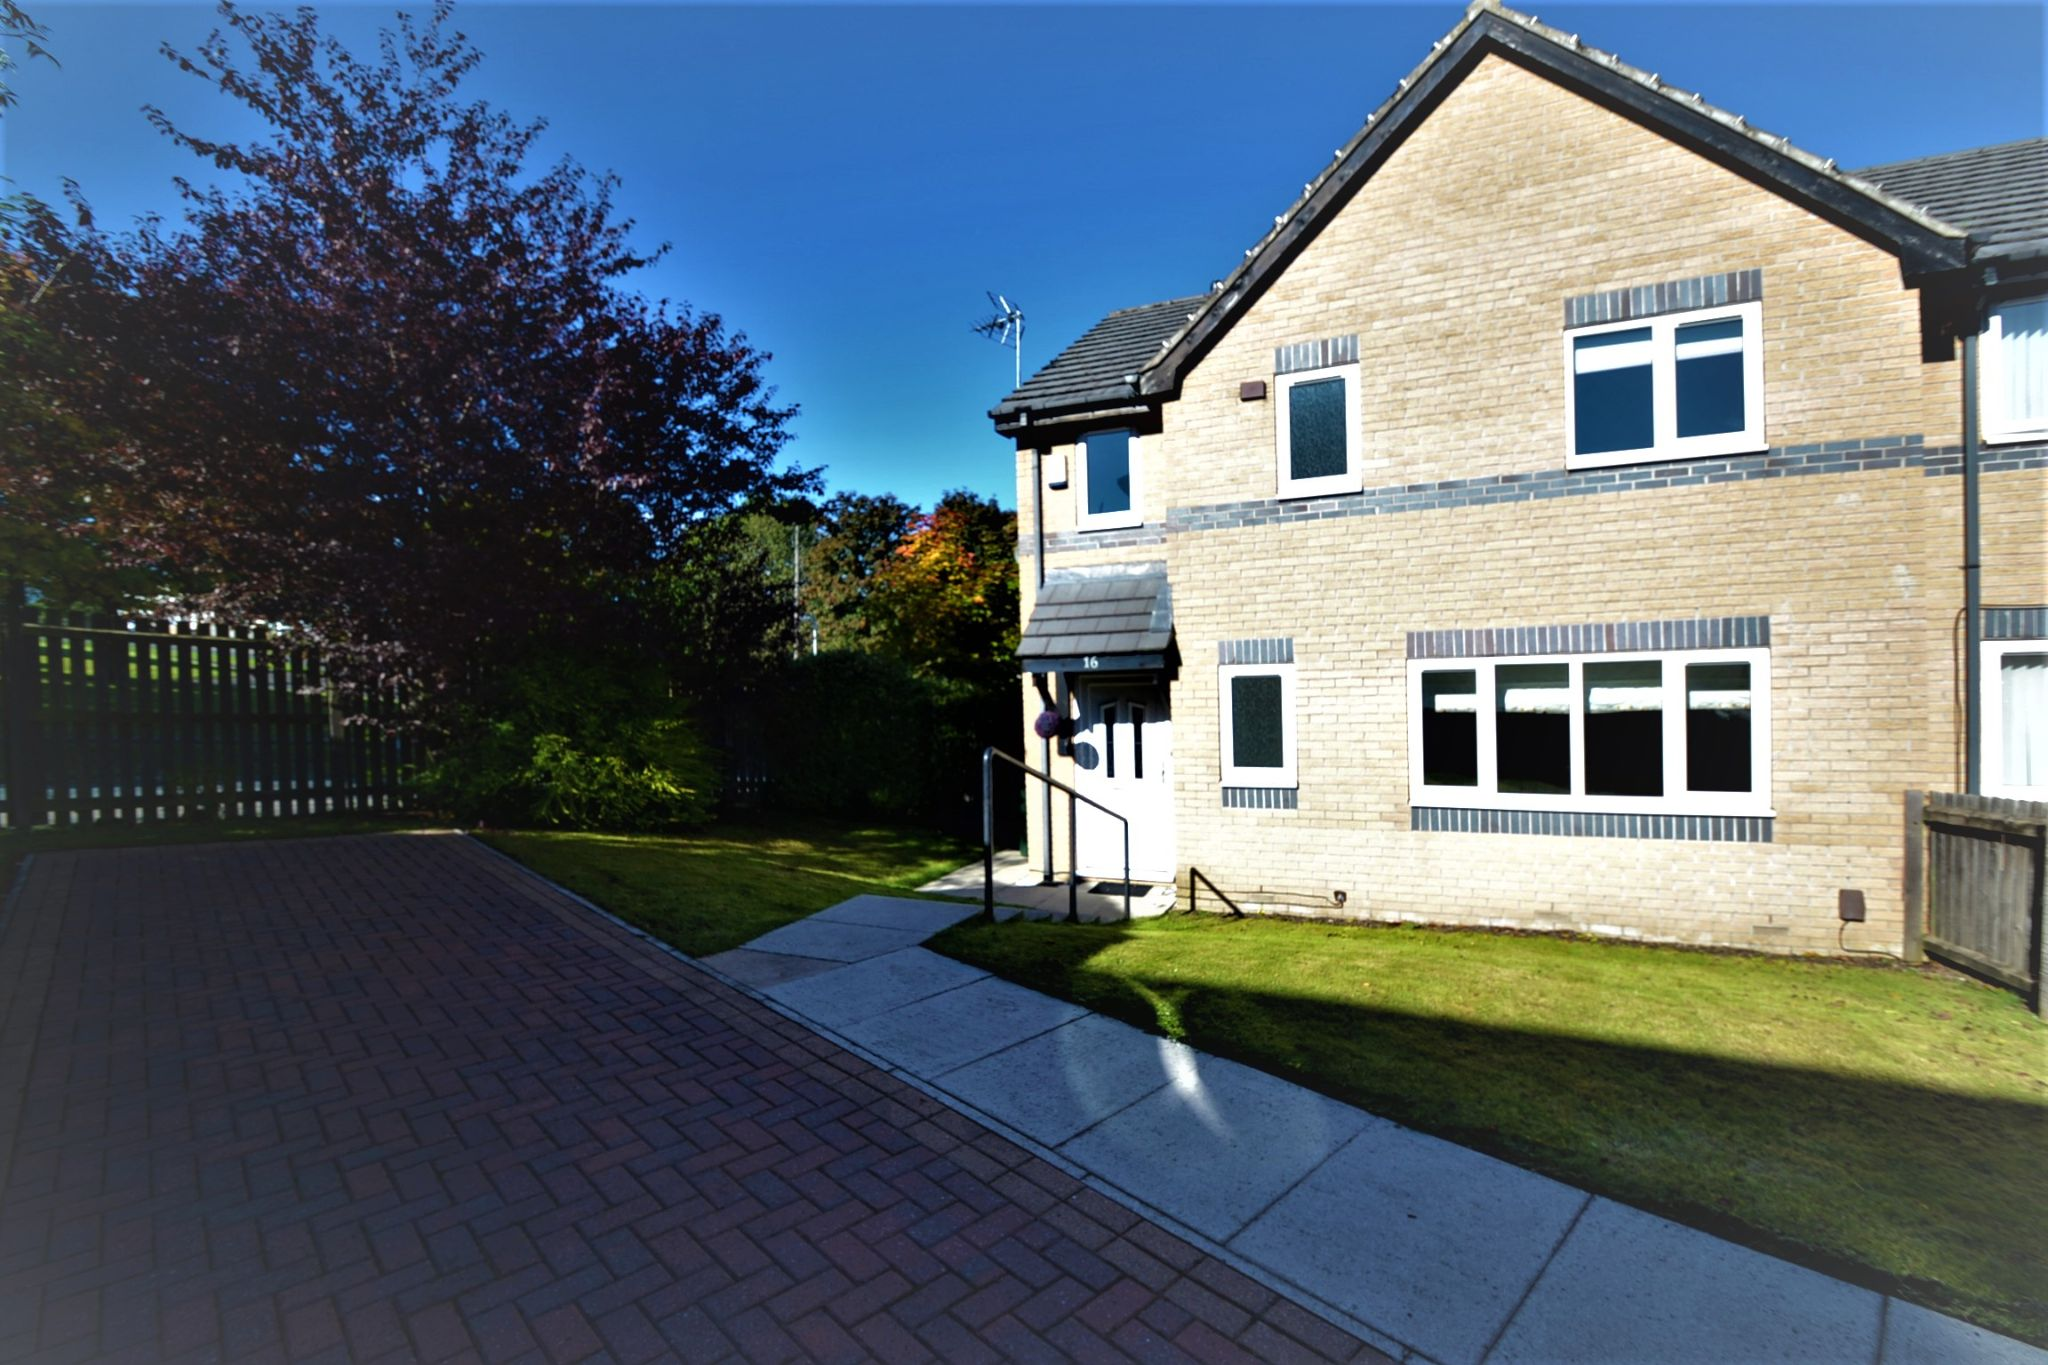 4 Bedroom Semi-detached House For Sale - Photograph 1